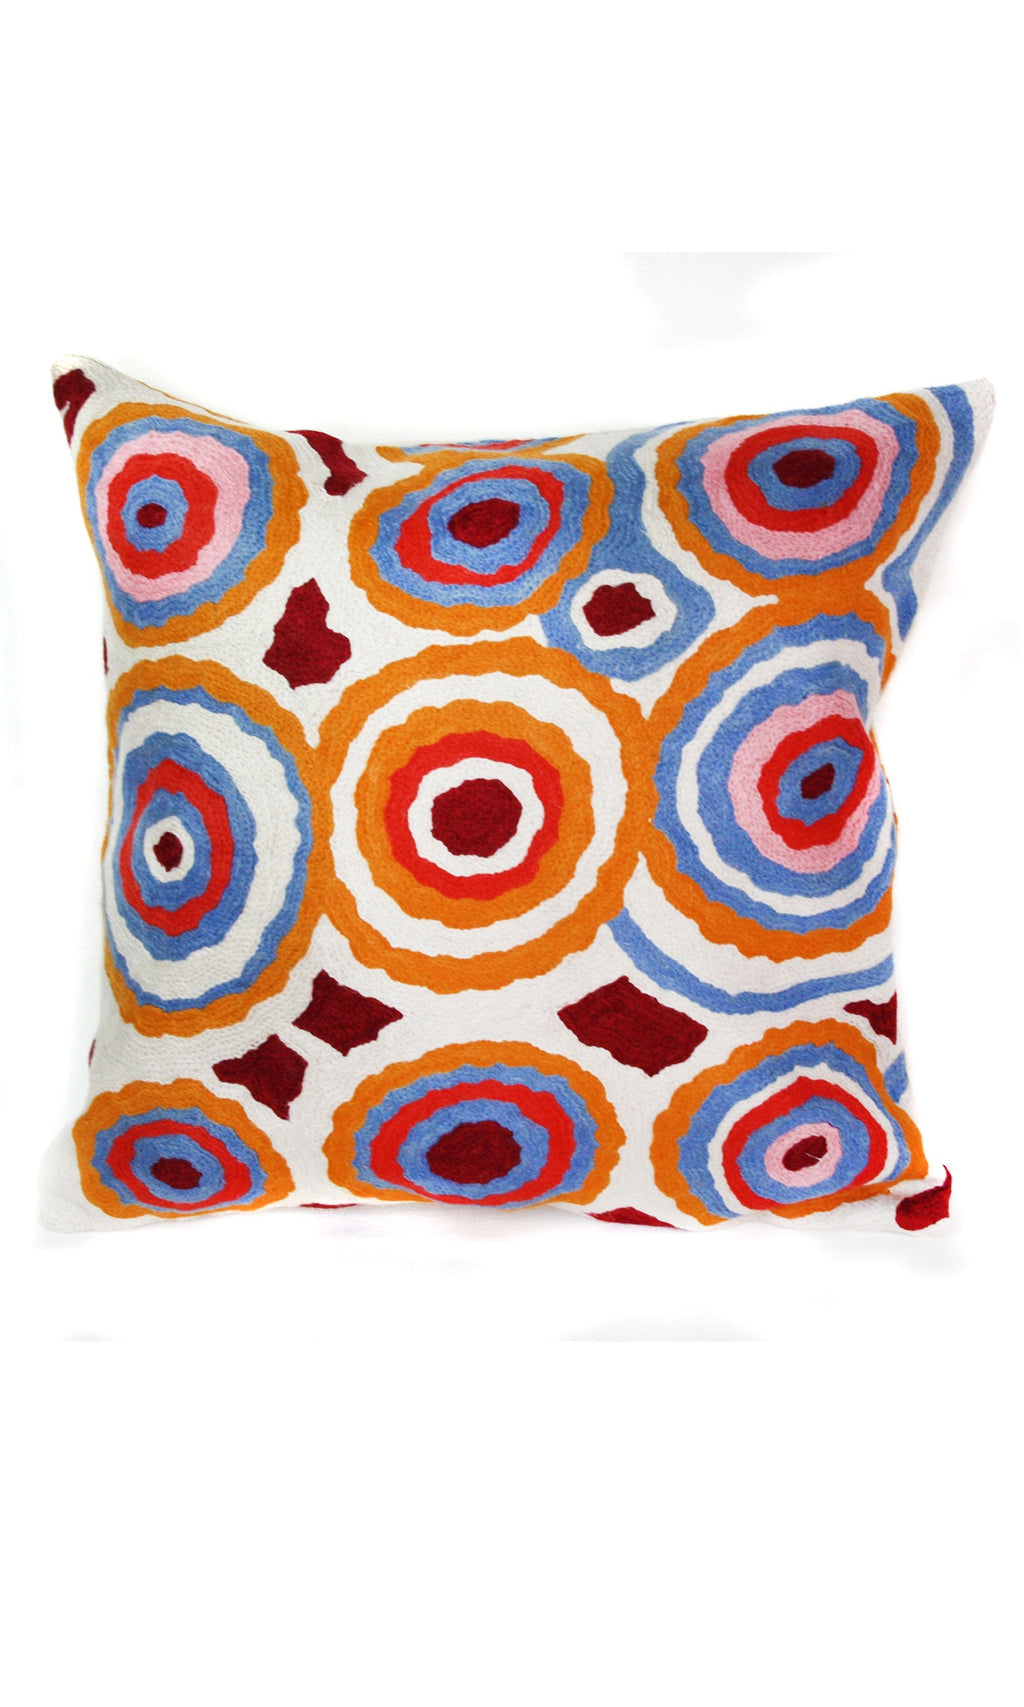 Aboriginal Art Cushion Cover by Rama Kaltu Kaltu Sampson (3)